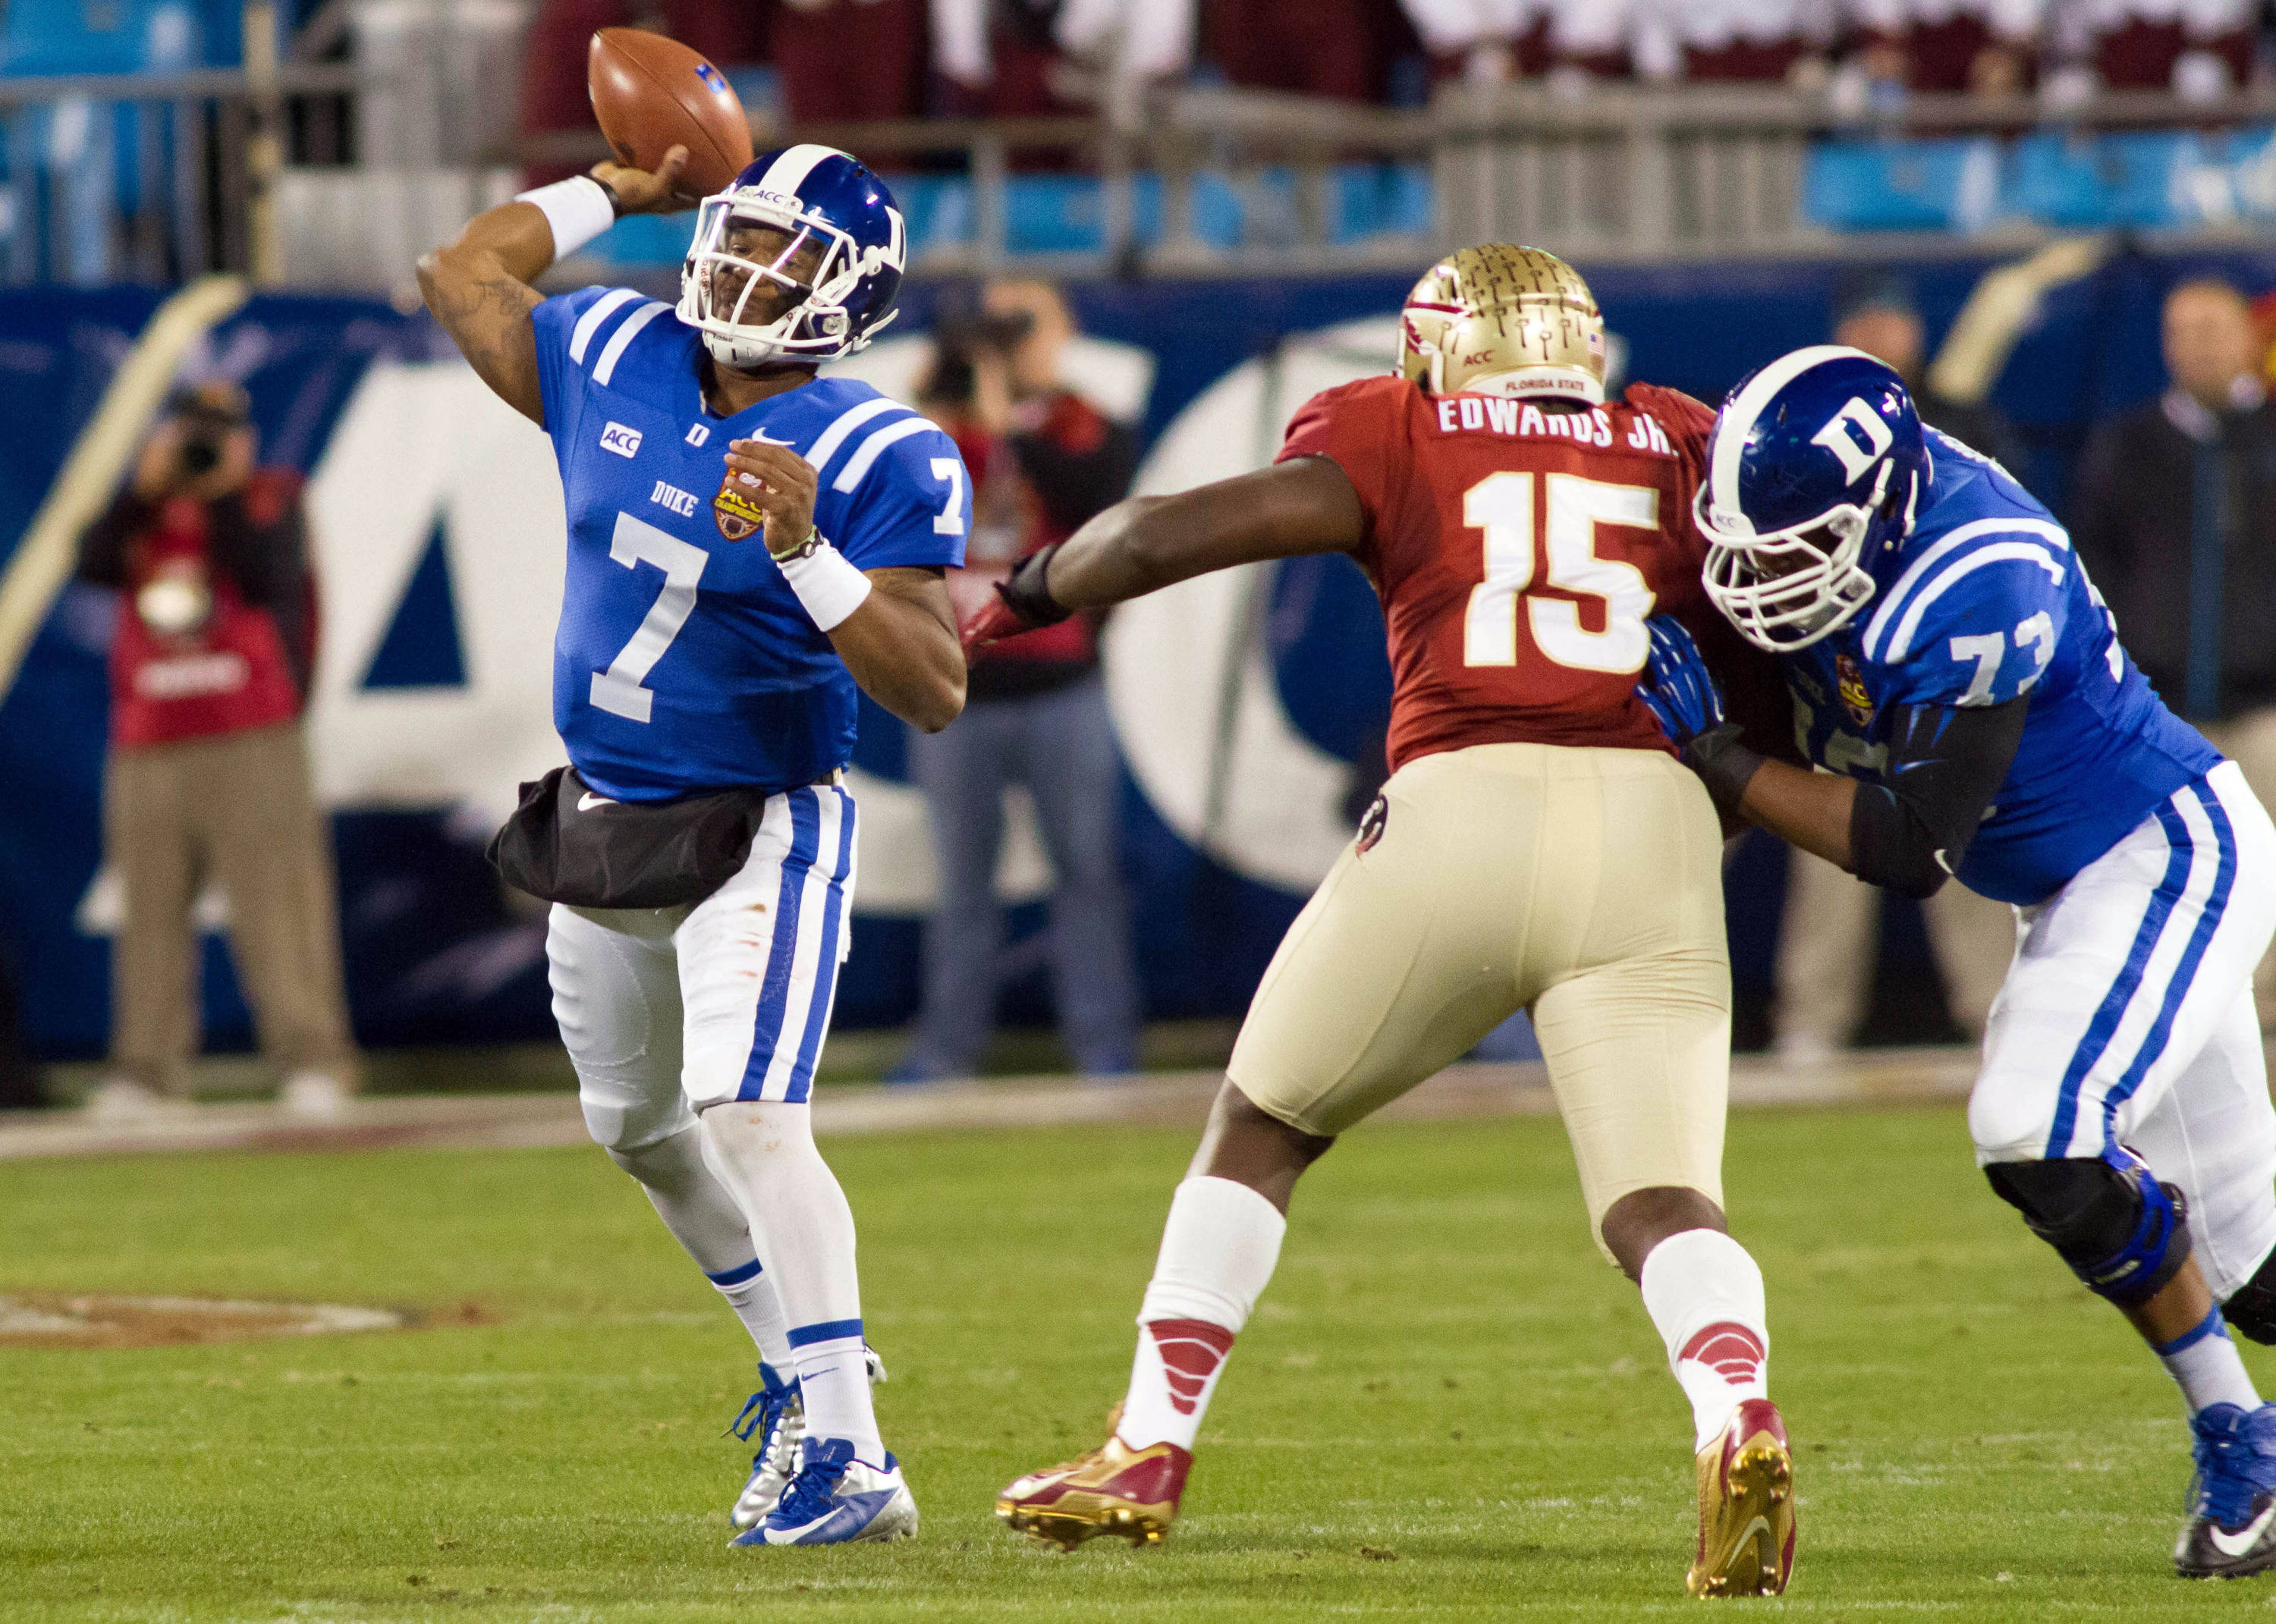 Dec 7, 2013; Charlotte, NC, USA; Duke Blue Devils quarterback Anthony Boone (7) throws a pass during the first quarter against the Florida State Seminoles at Bank of America Stadium. Mandatory Credit: Jeremy Brevard-USA TODAY Sports